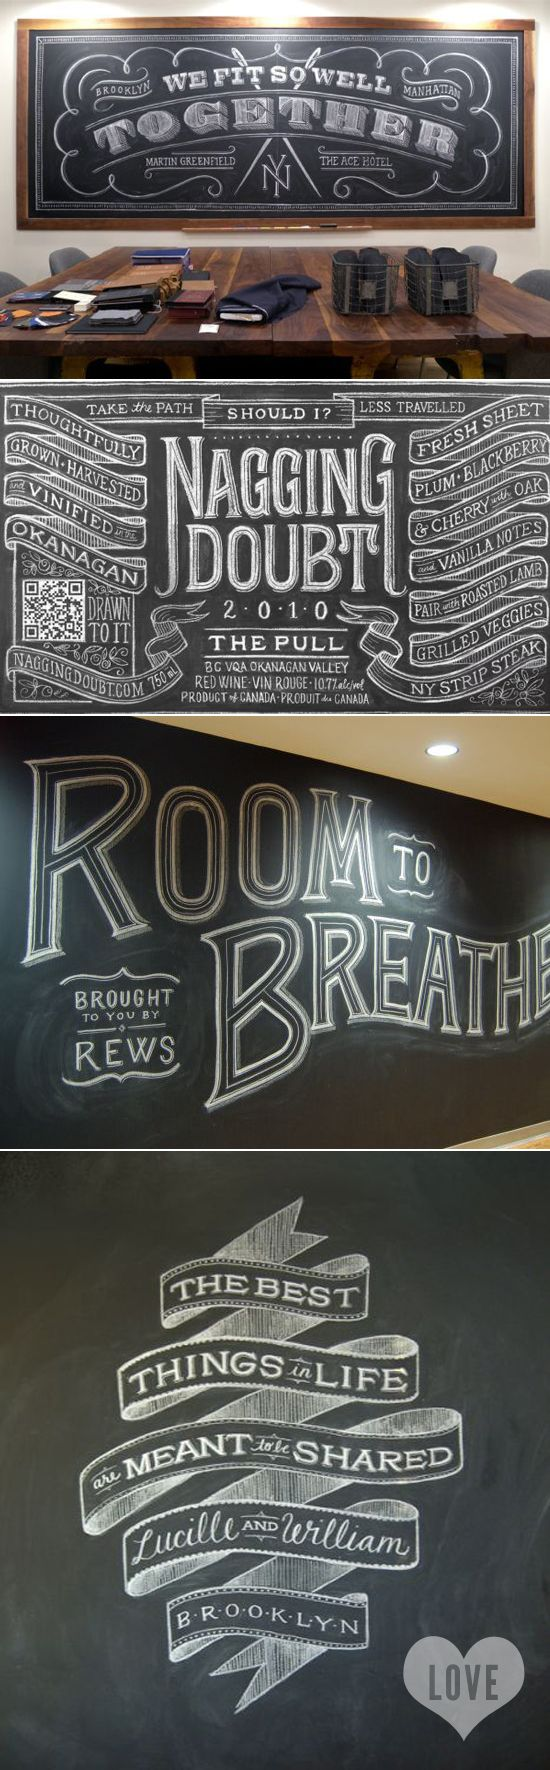 The chalkboard wall has been cleaned, time to draw some new #typography #inspiration